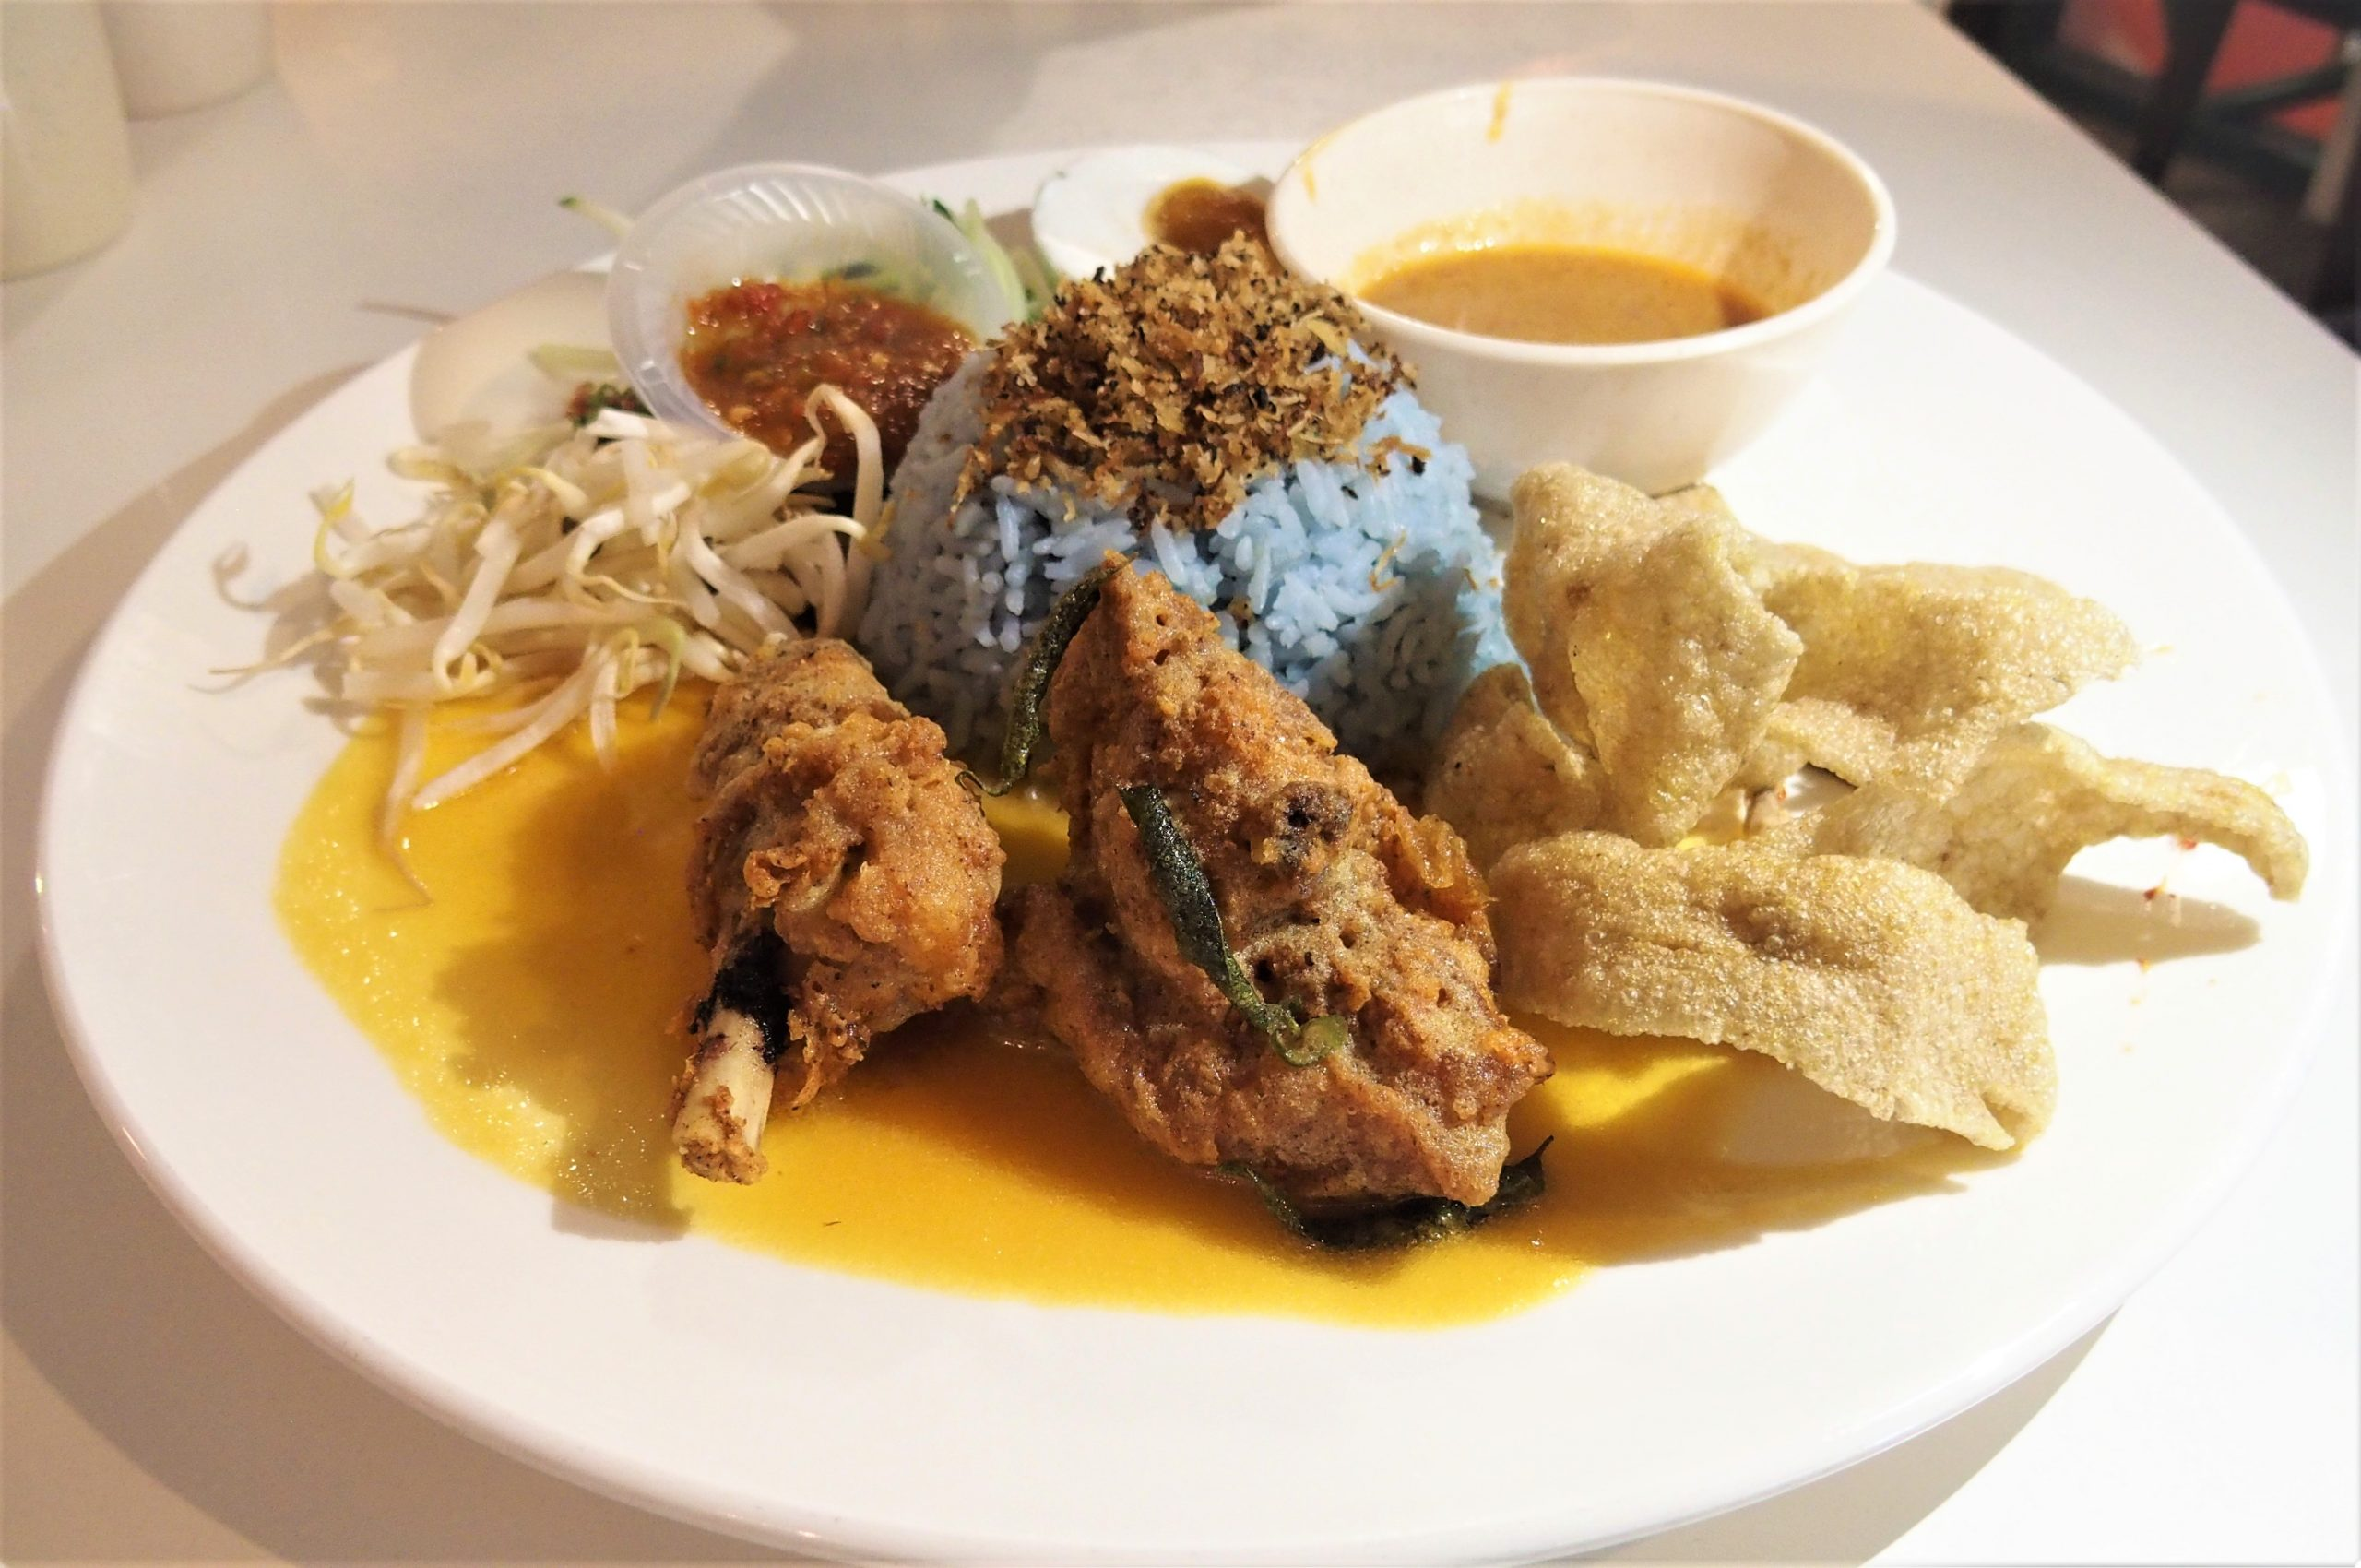 Dependable, delicious Malaysian fare at Dua by SKOHNS